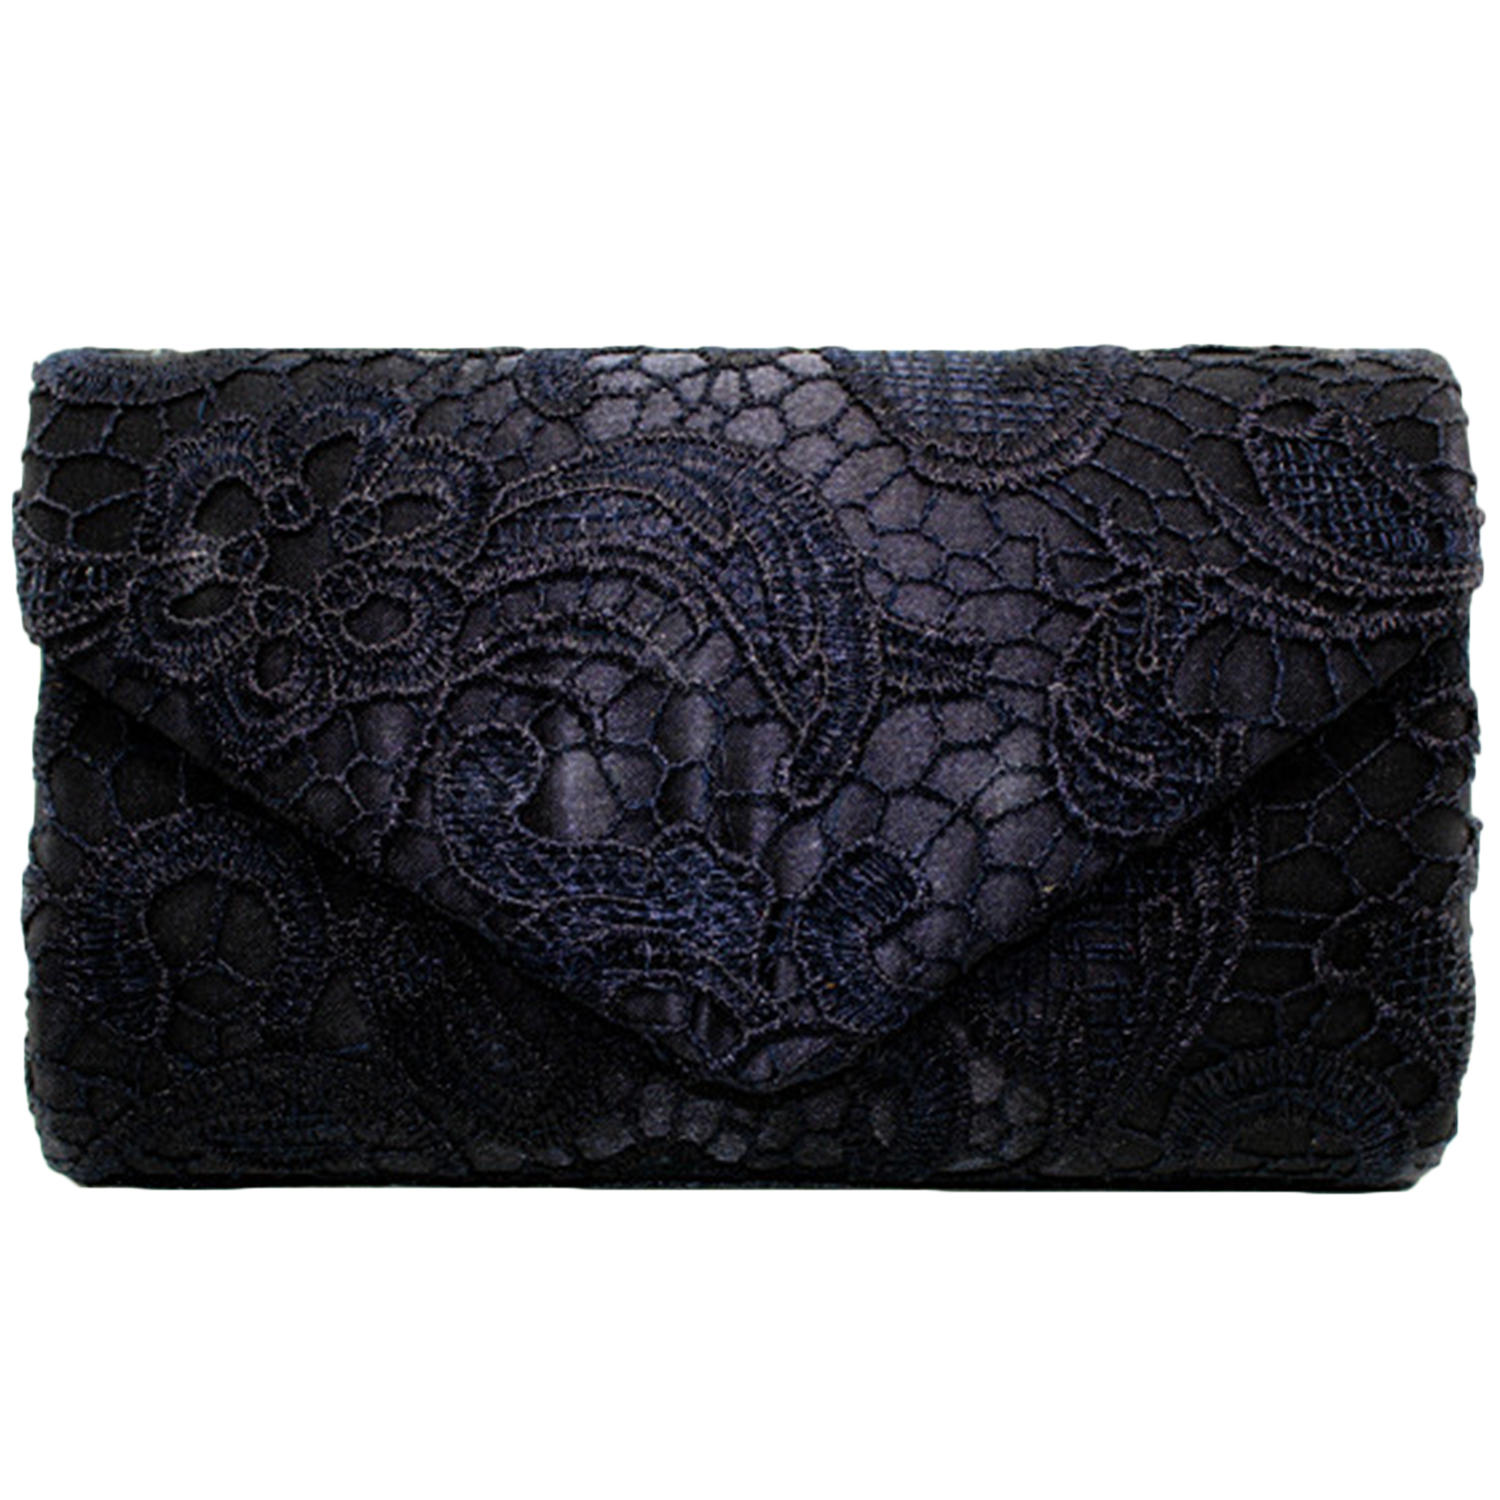 Womens Solid Floral Lace Evening Envelope Clutch Bag